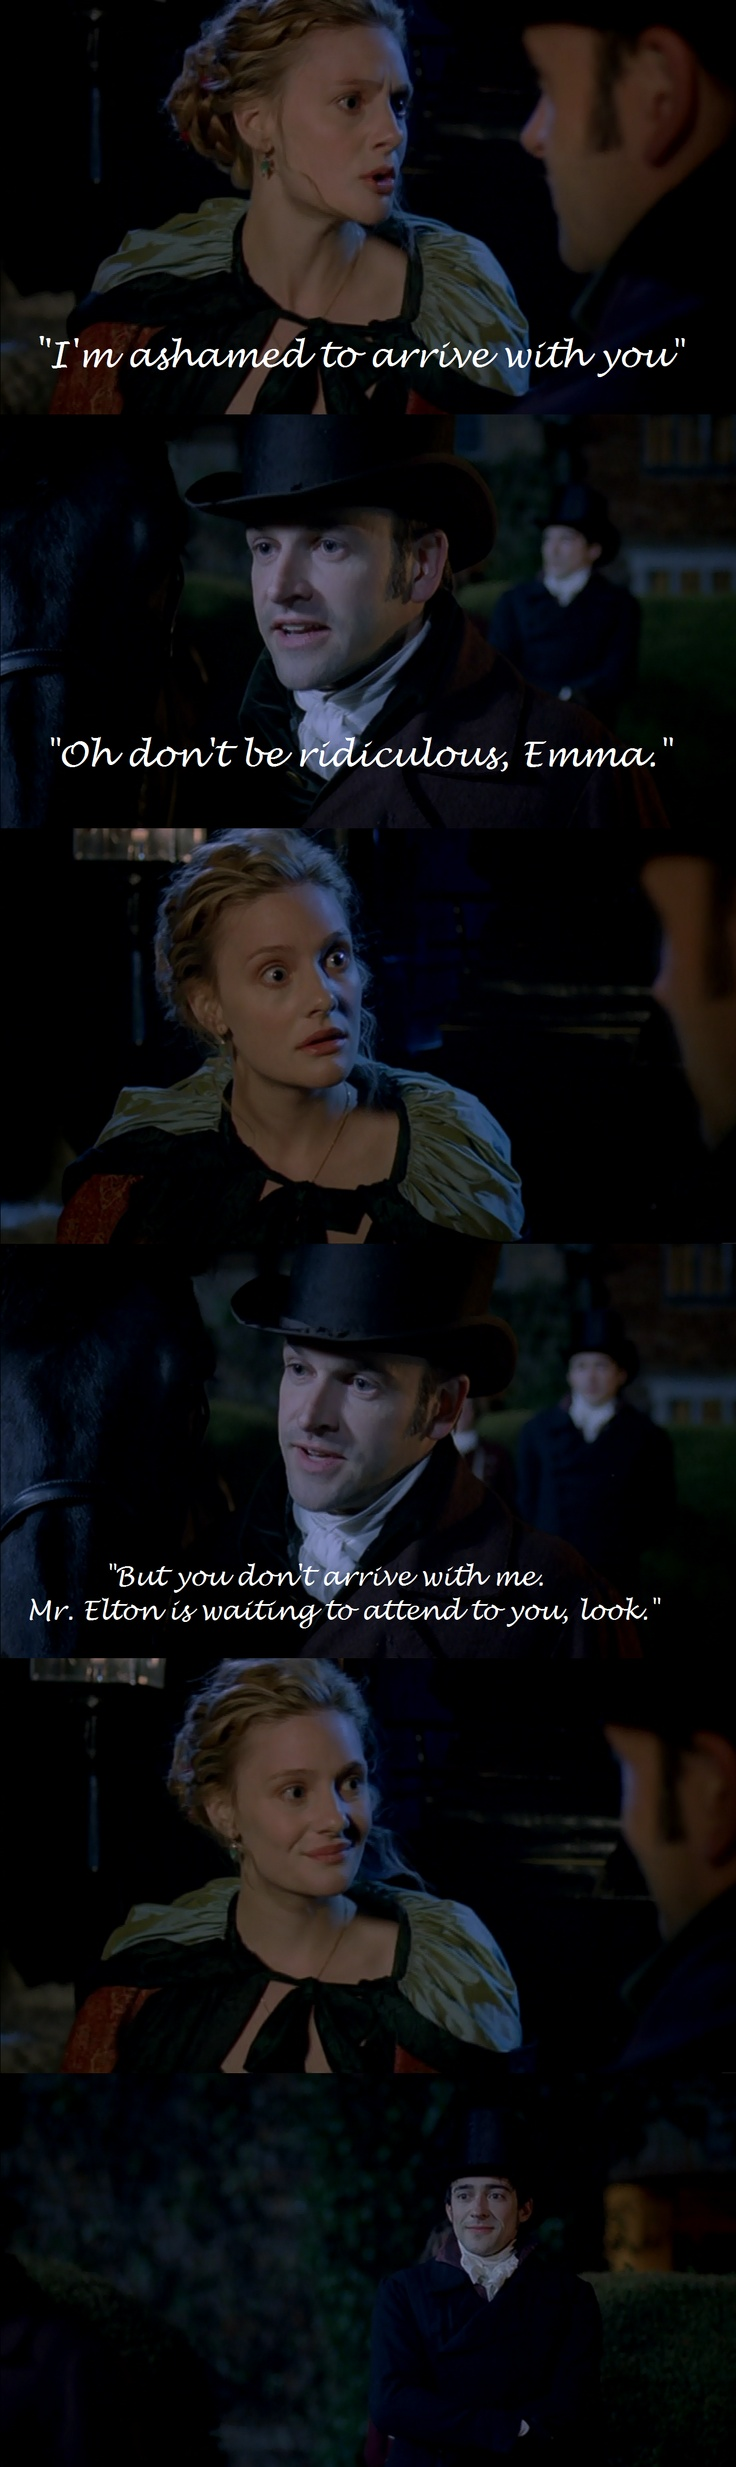 emma and knightley relationship poems